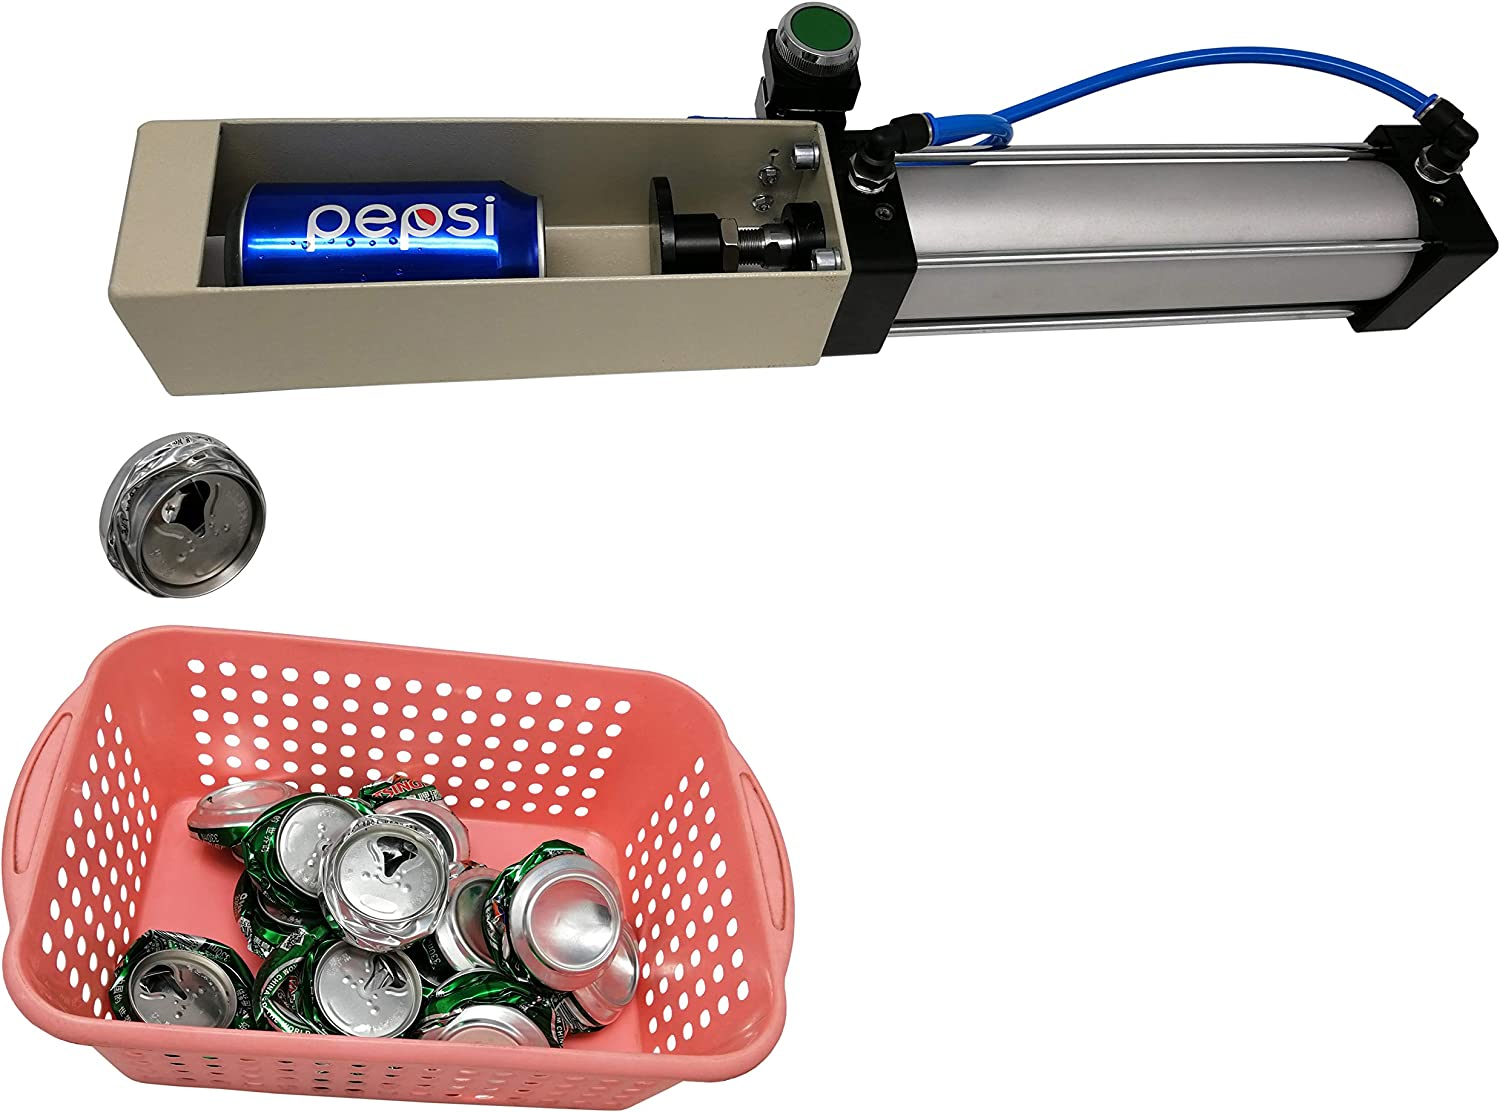 Aluminum Can Crusher, Heavy Duty Pneumatic Cylinder Soda Beer Can Crusher, Eco-Friendly Recycling Tool